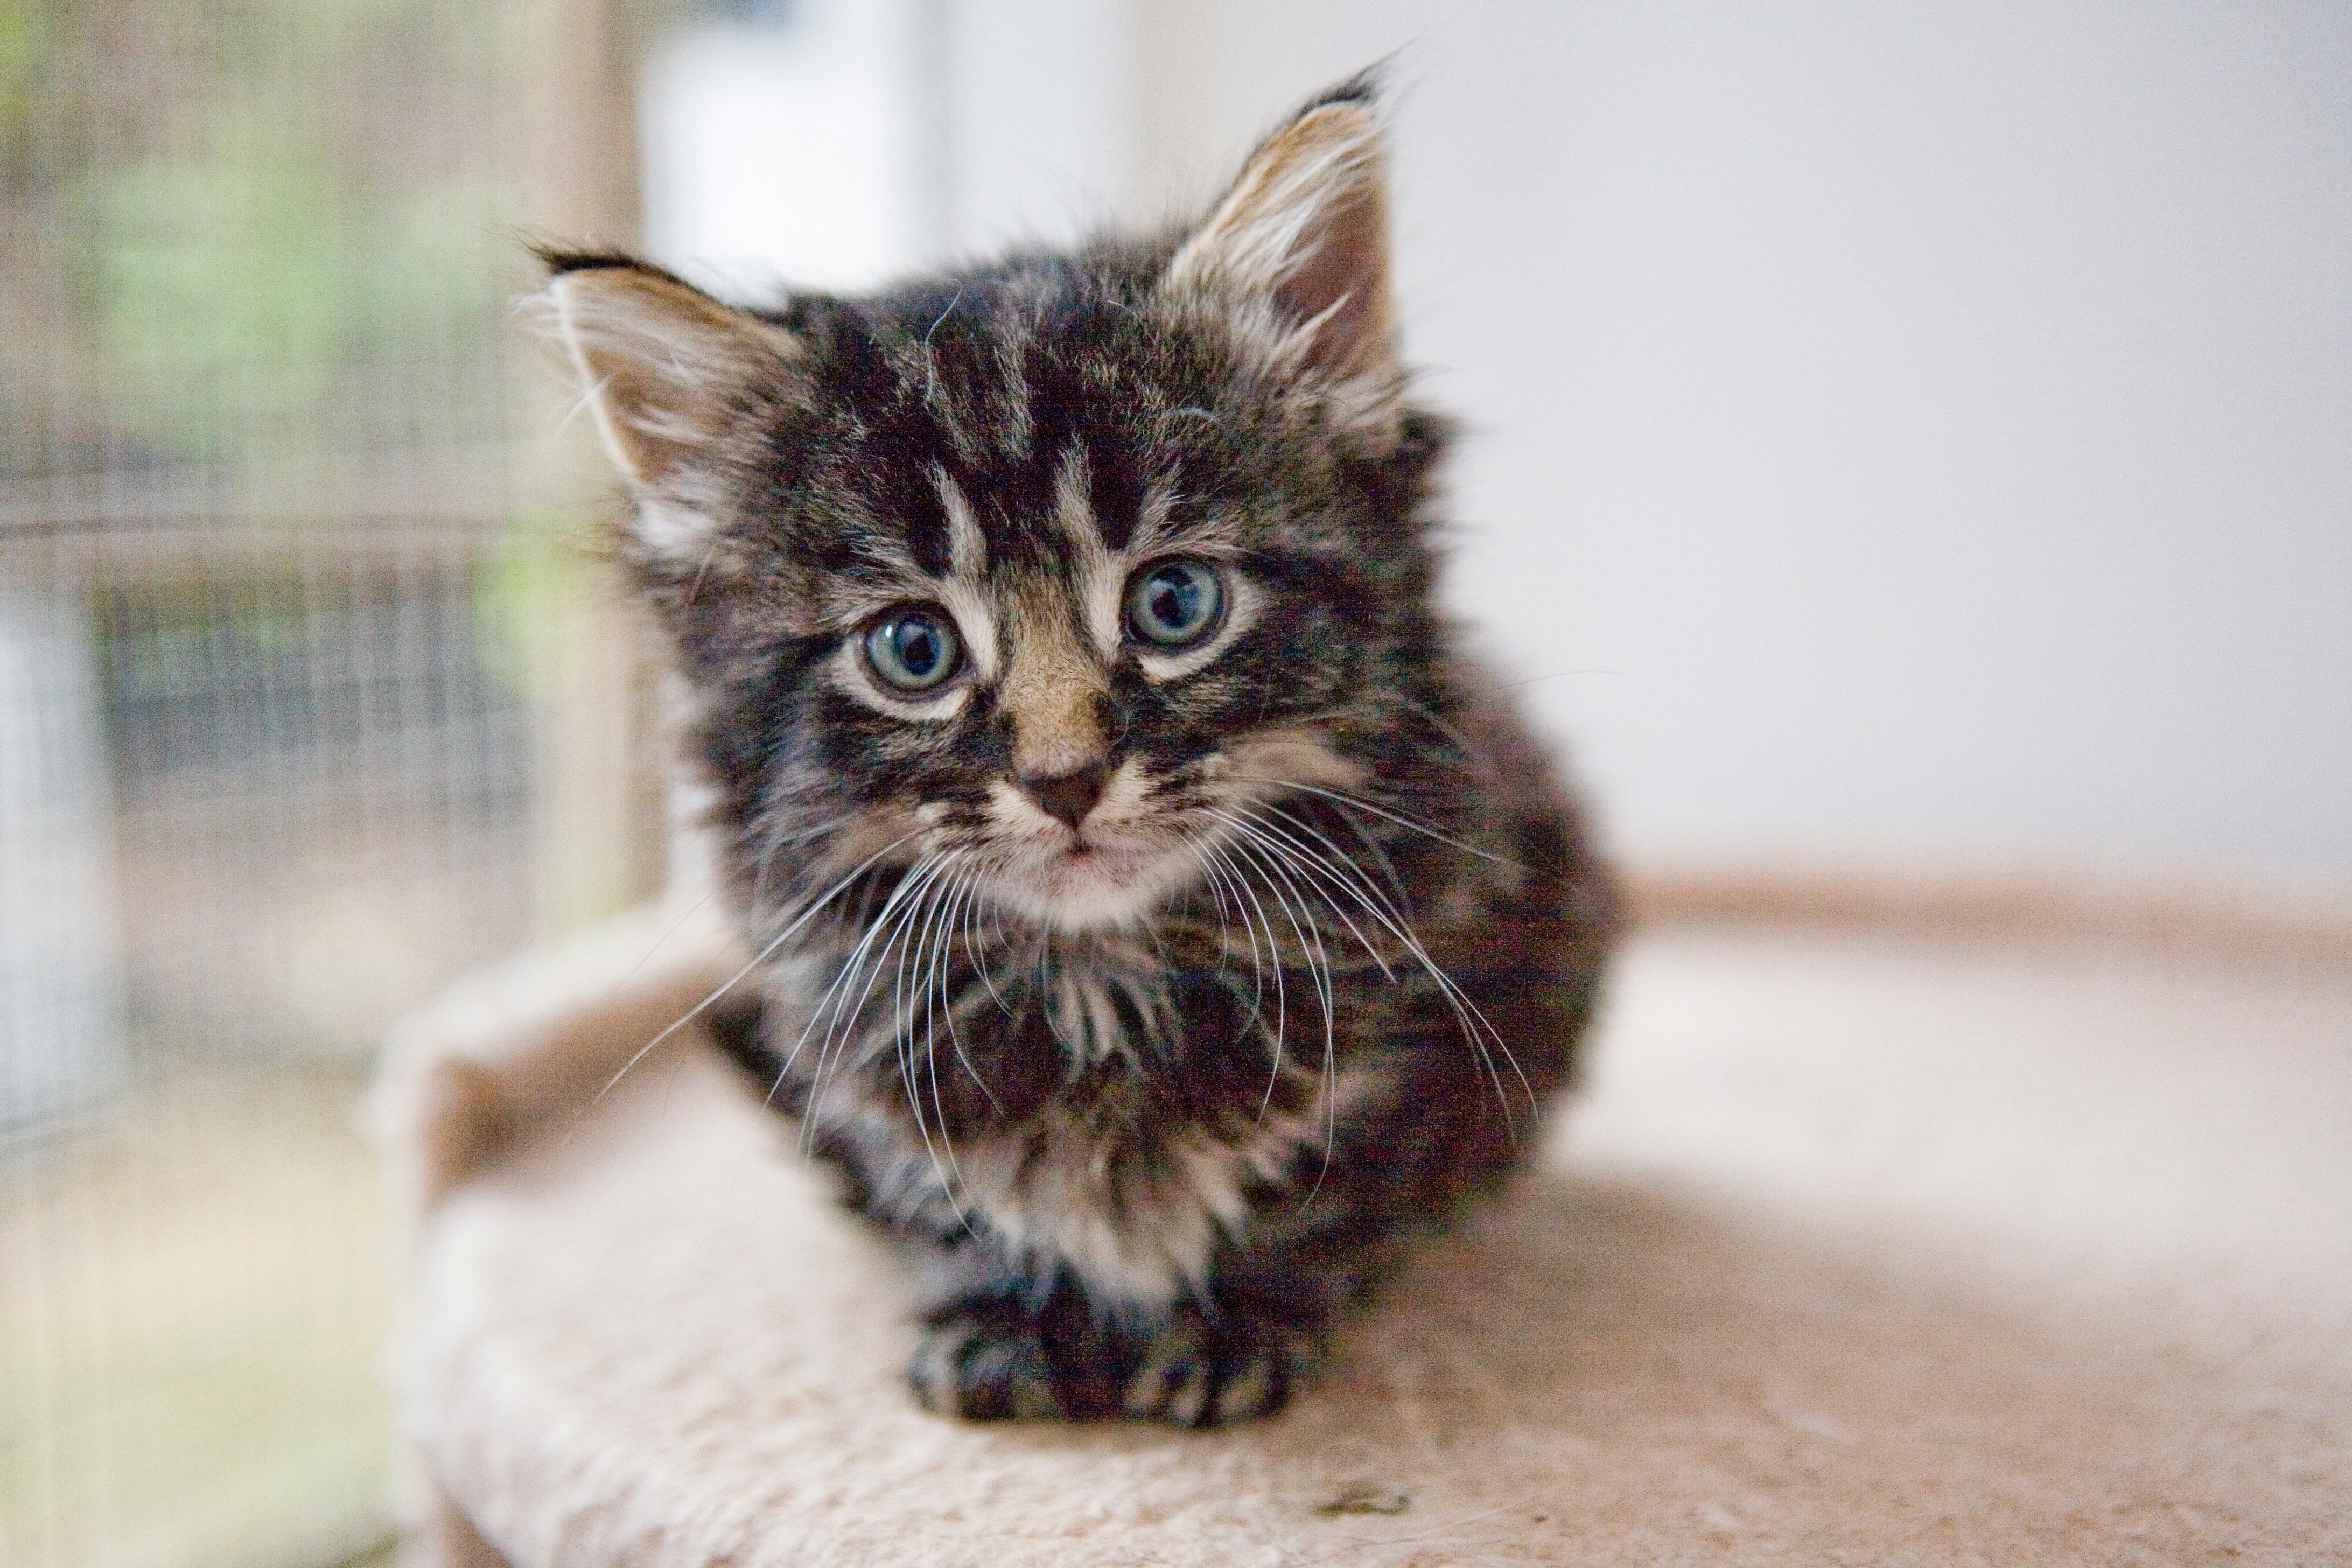 Beginners Tips on How to Take Care of Kittens